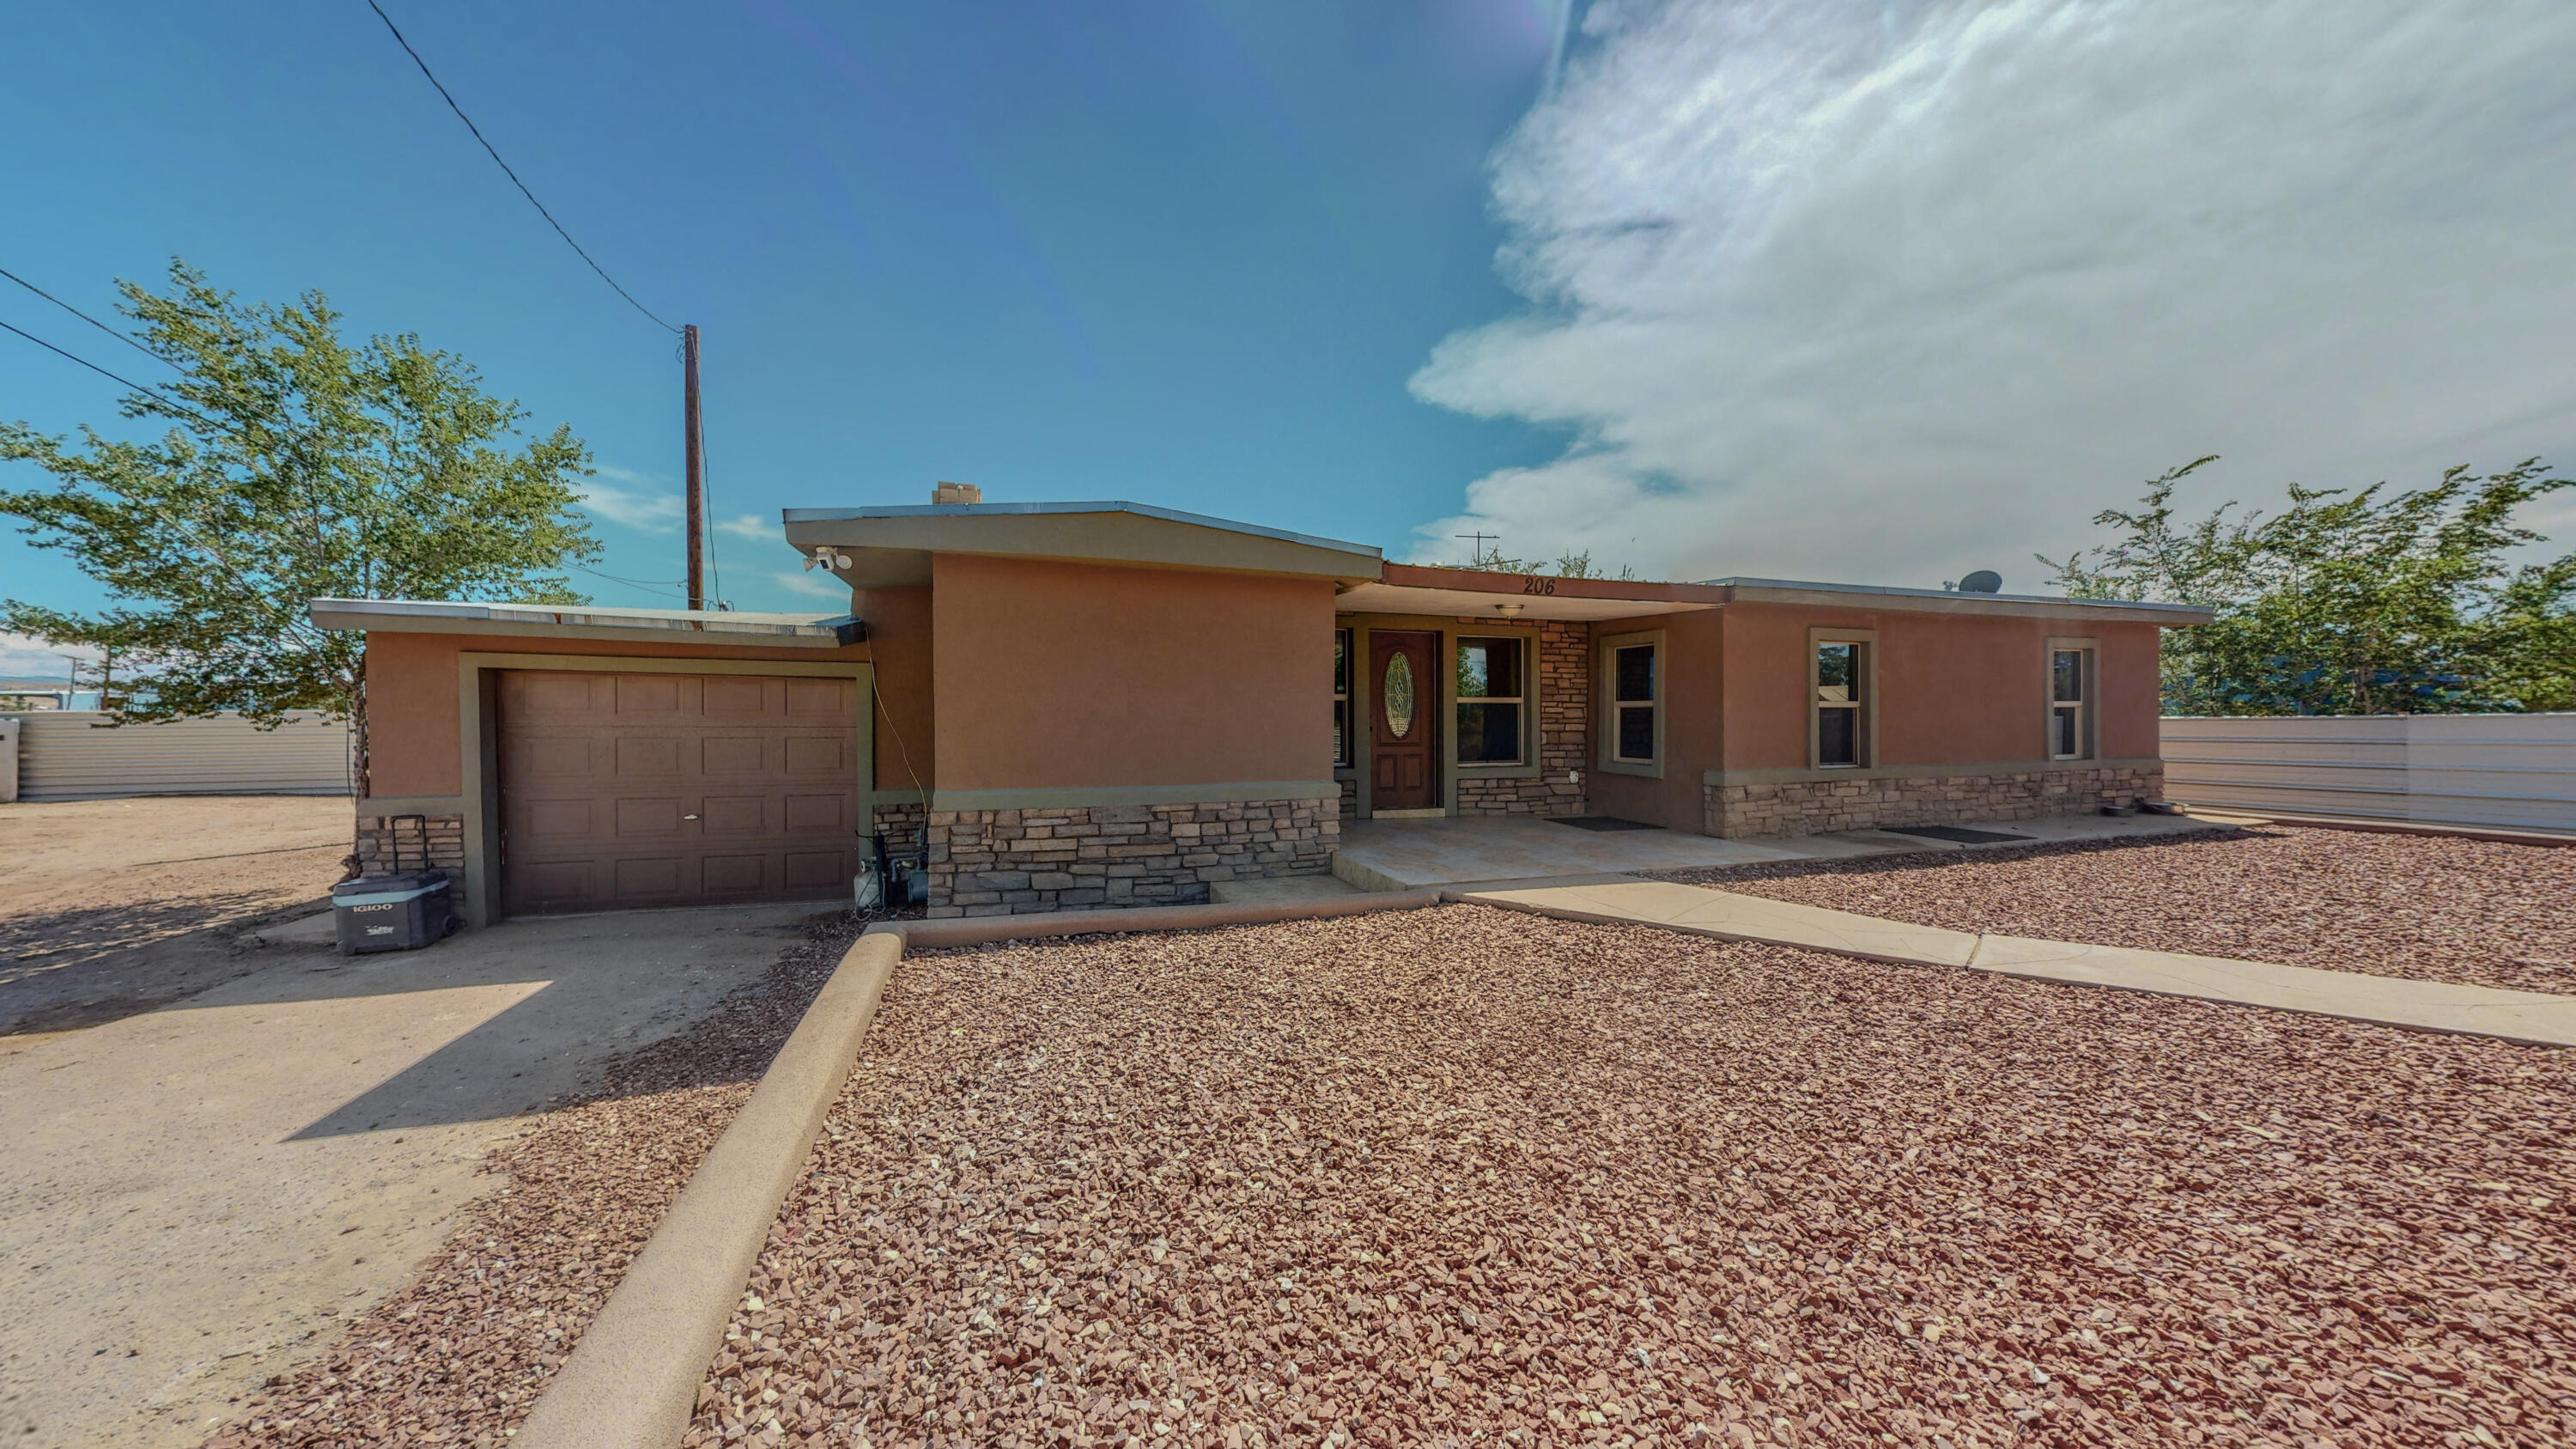 Bring Your Horses  and your Boy Toys, ,This home has refrigerated air, updated baths,  updated kitchen, two over-sized garages, one detached, one attached - double pane windows - wood burning fireplace plus wood stove - good size rooms - and lots of space to roam